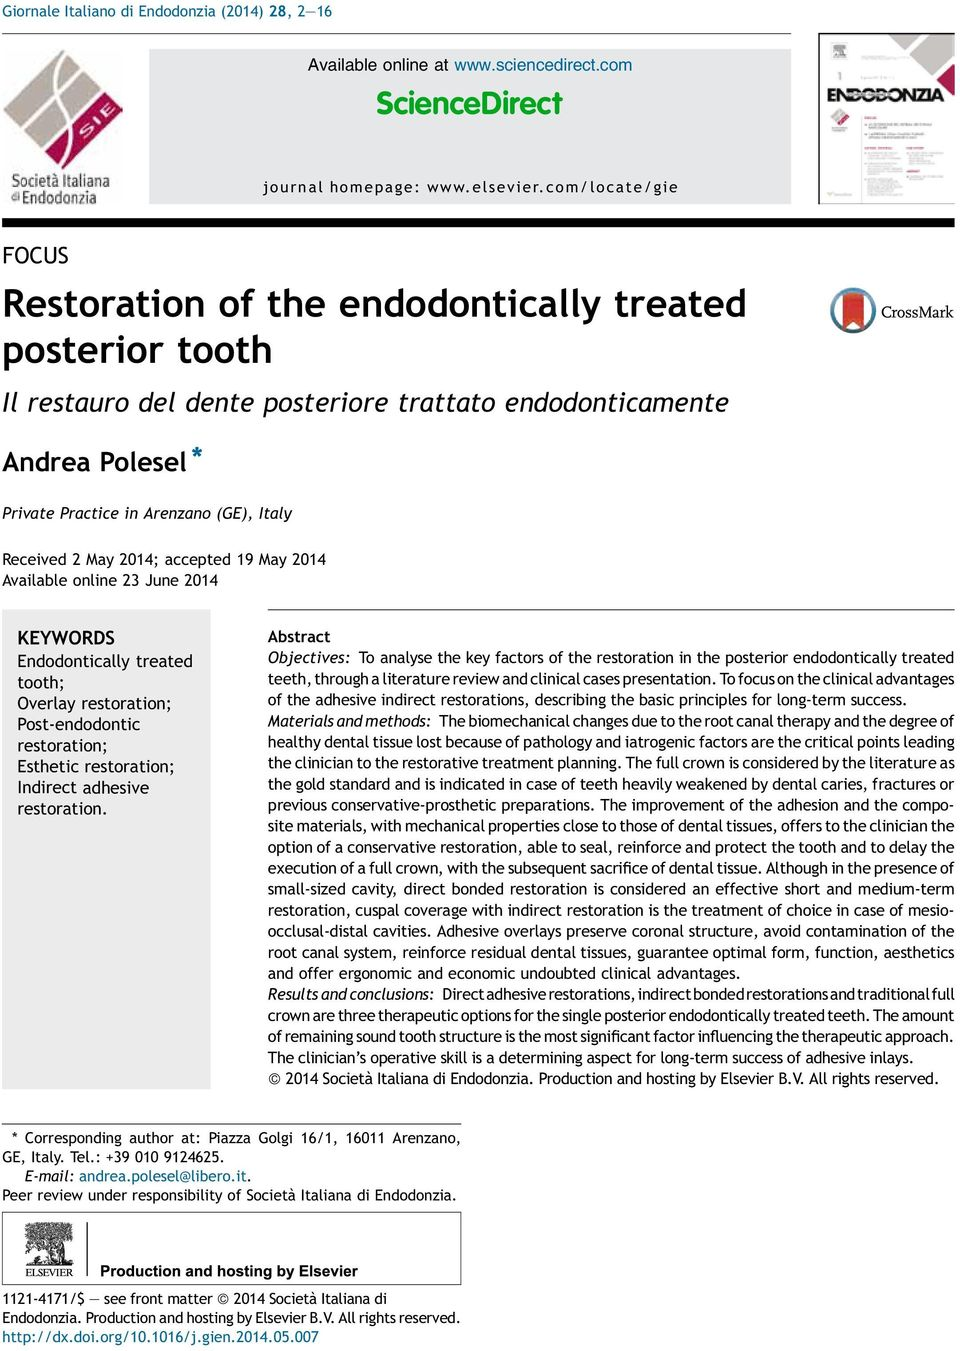 Received 2 May 2014; accepted 19 May 2014 Available online 23 June 2014 KEYWORDS Endodontically treated tooth; Overlay restoration; Post-endodontic restoration; Esthetic restoration; Indirect